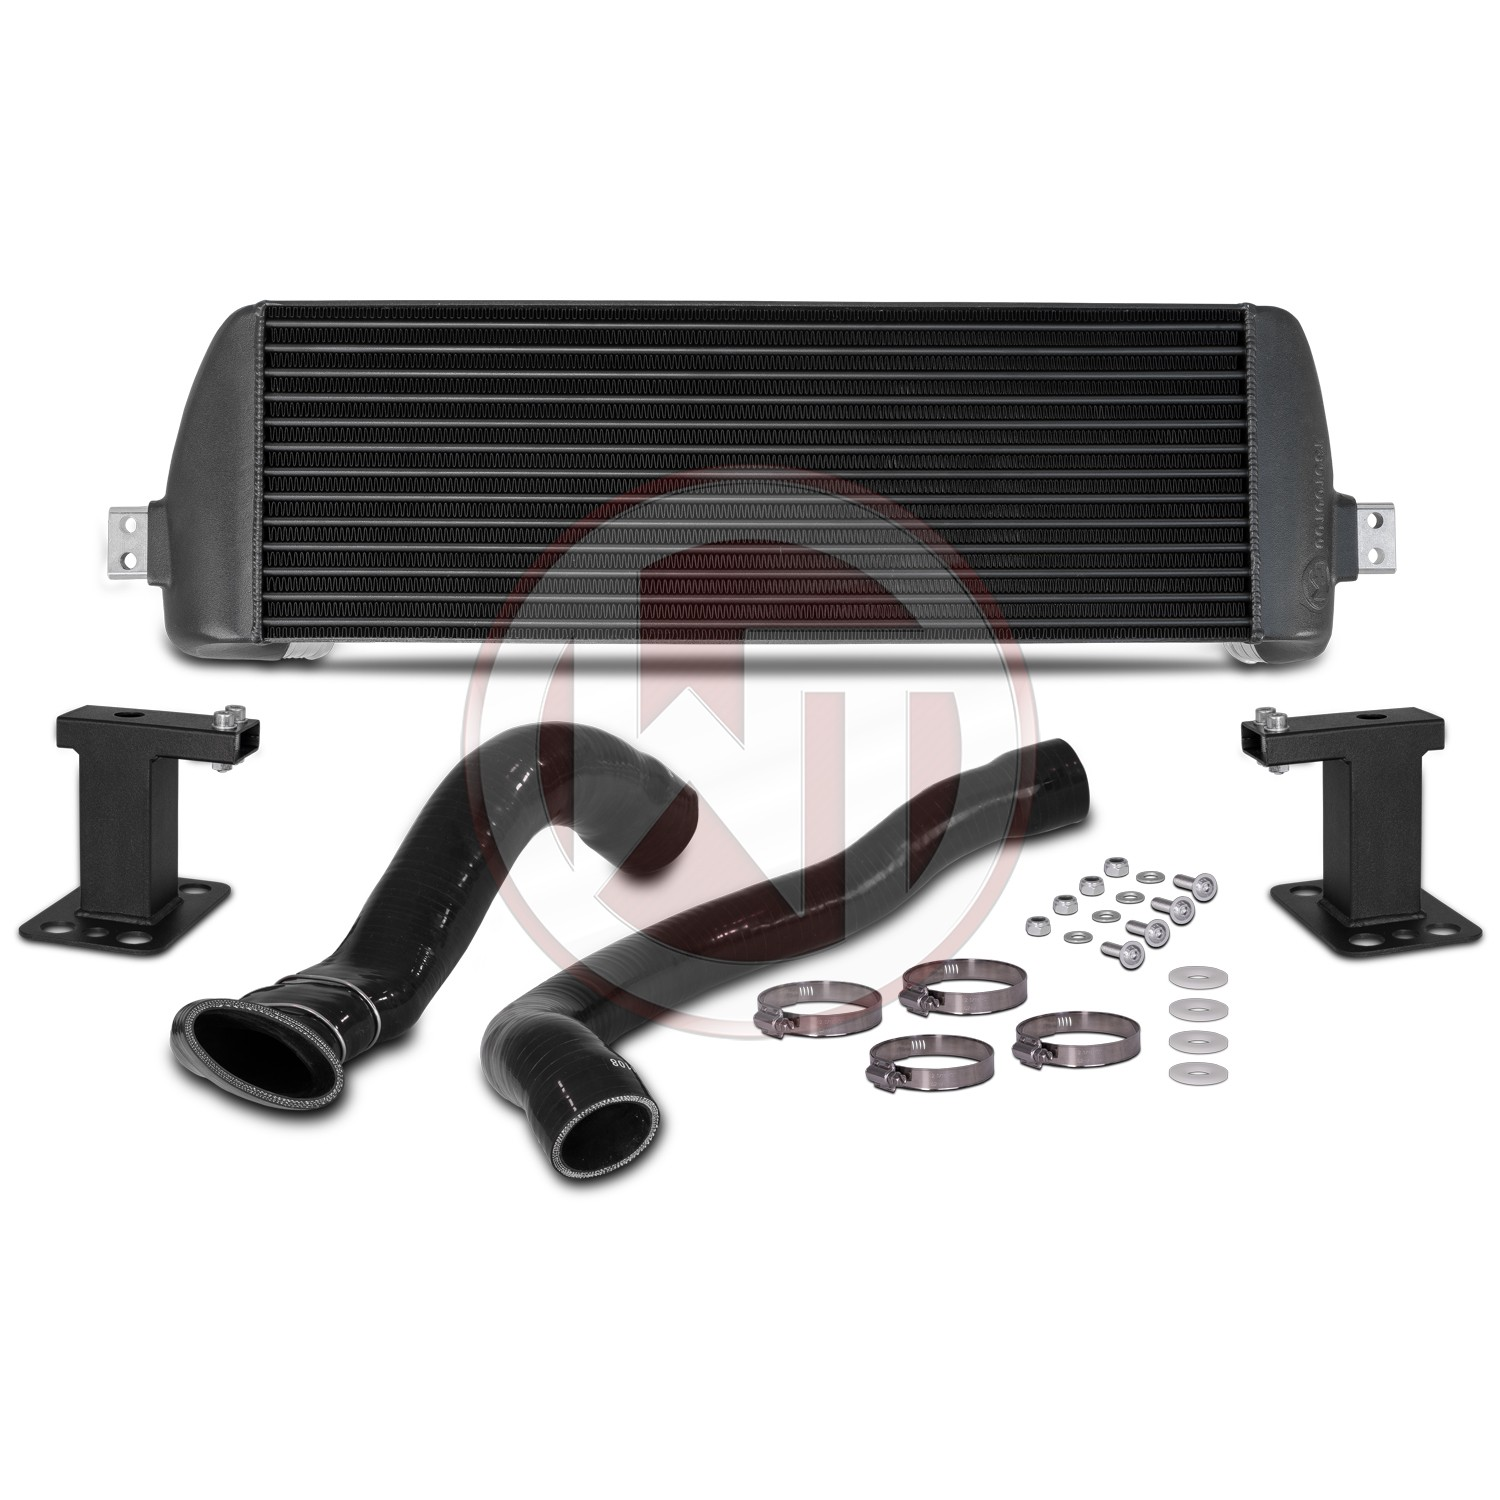 Fiat 500 Abarth Competition Intercooler Kit - Automatic Gearbox